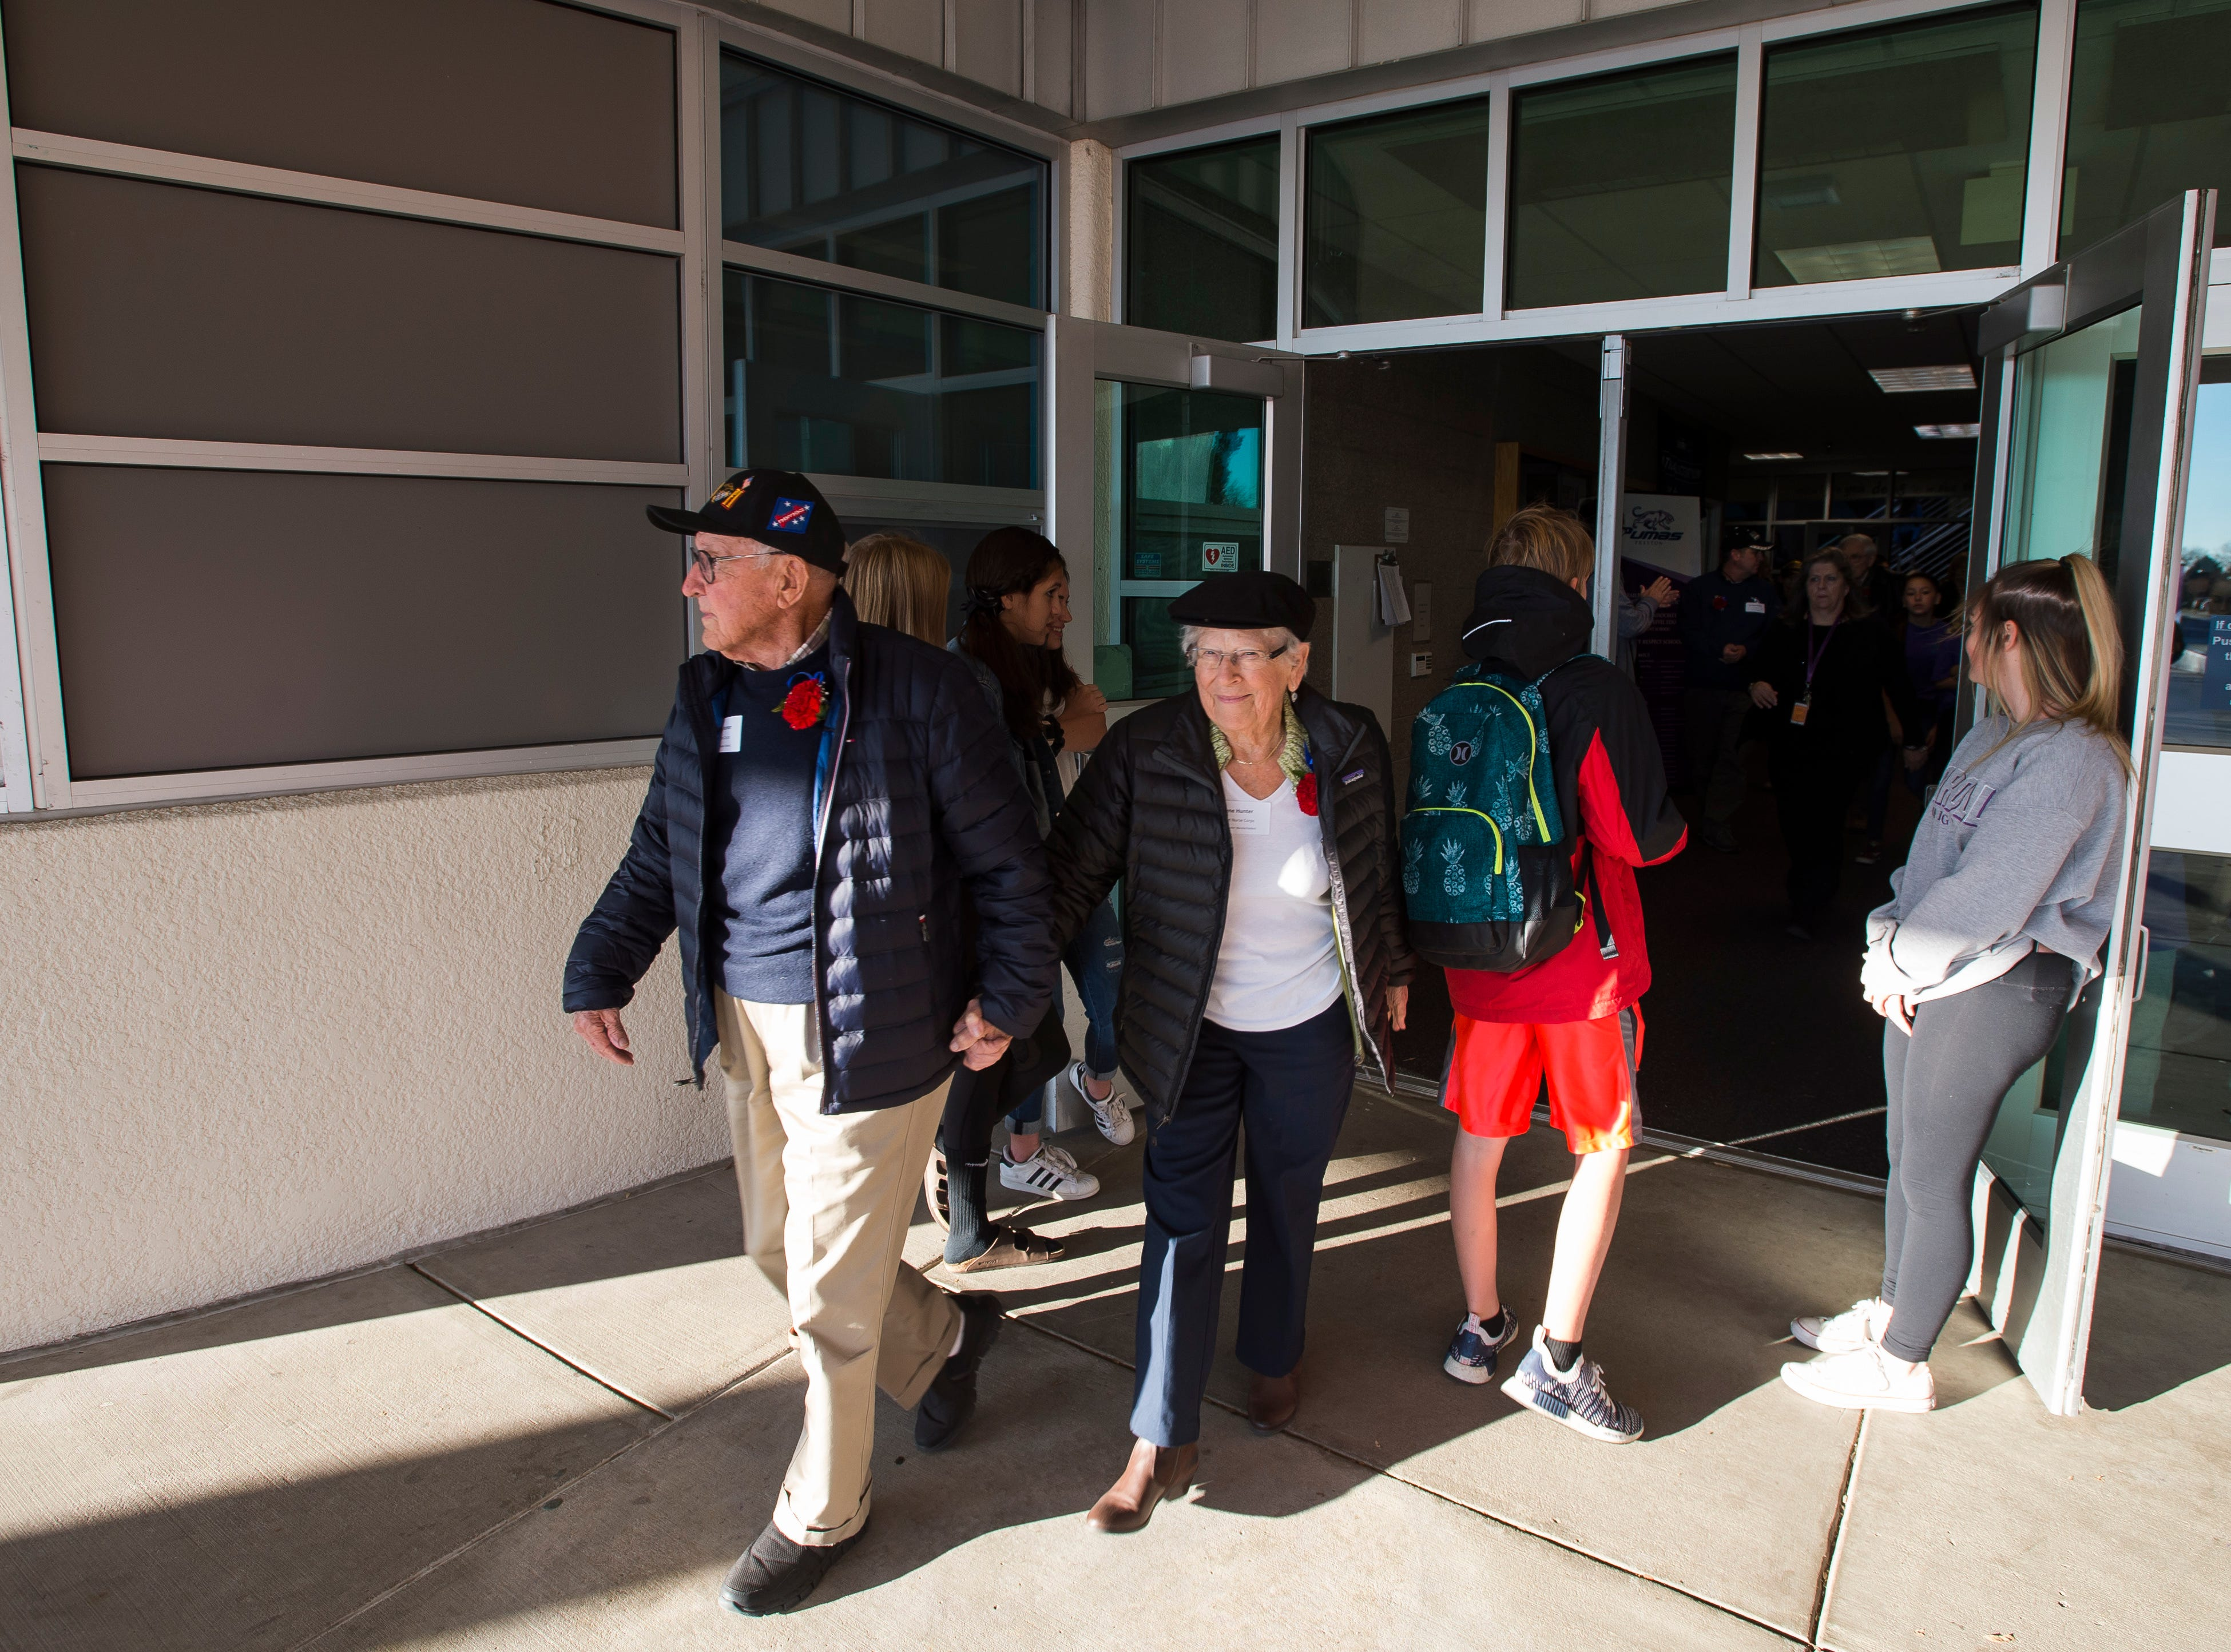 World War II Marine Corp veteran Walter Hunter and wife of 72 years and World War II Cadet Nurse Corps veteran Irene Hunter head out to a special flag ceremony in front of Preston Middle School during the school's fourth annual Veterans Day Breakfast on Friday, Nov. 9, 2018, at Preston Middle School in Fort Collins, Colo.